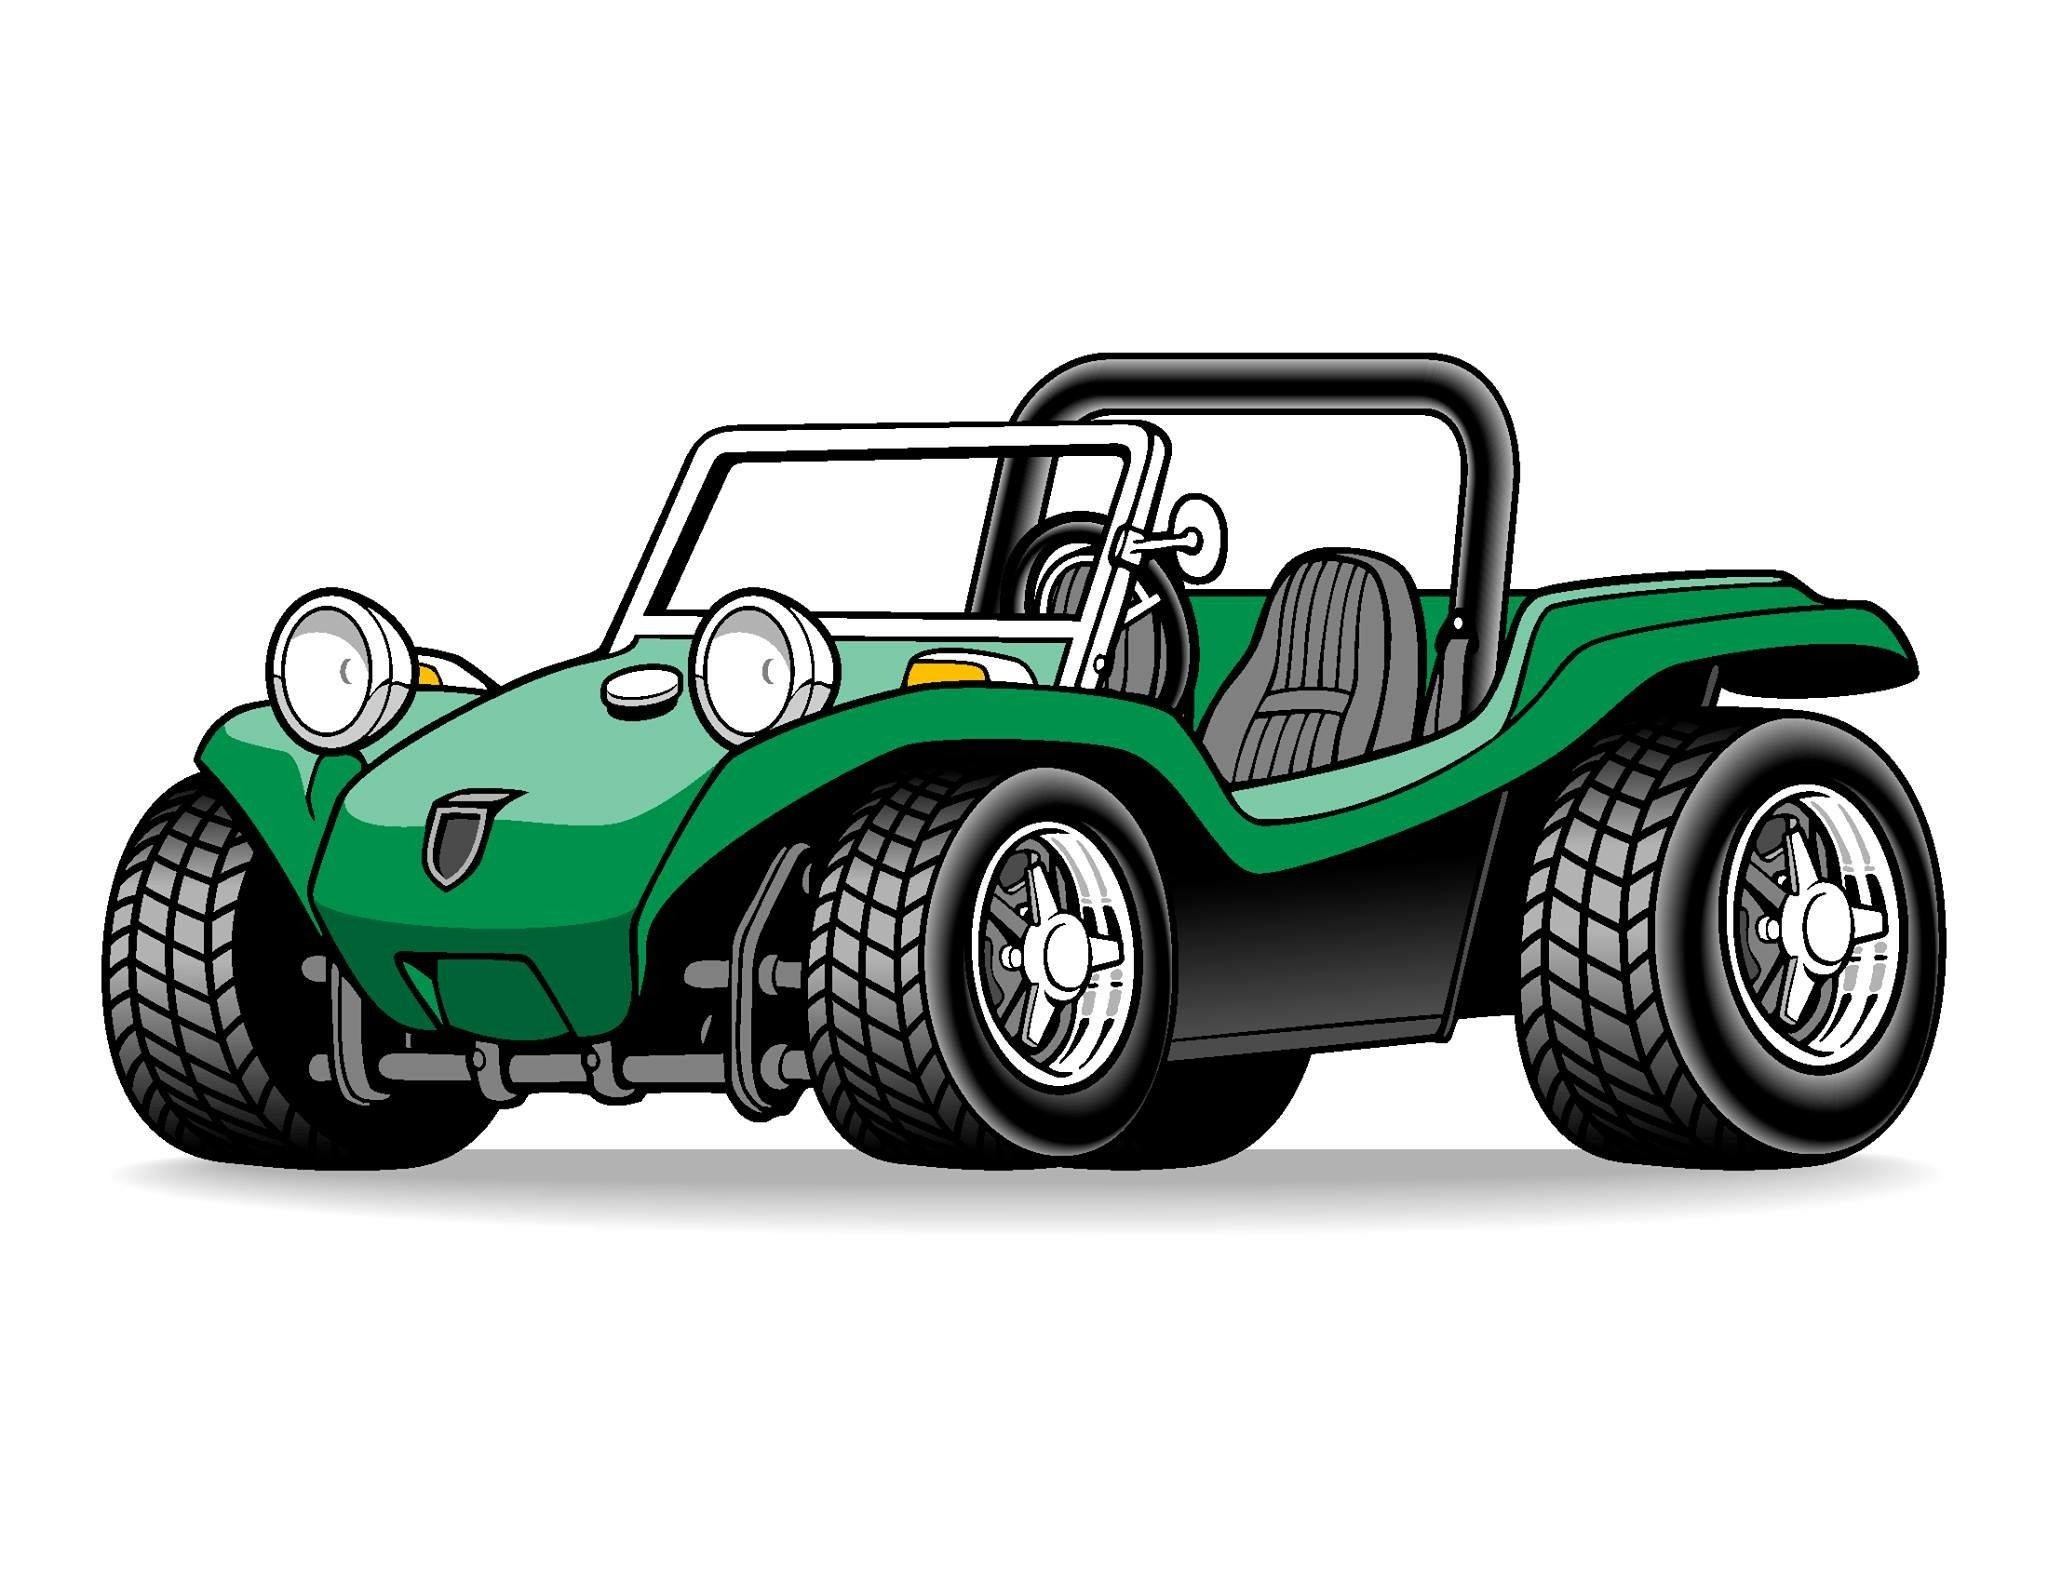 Ghost Vw Aircooled Image By J Dune Buggy Vw Dune Buggy Manx